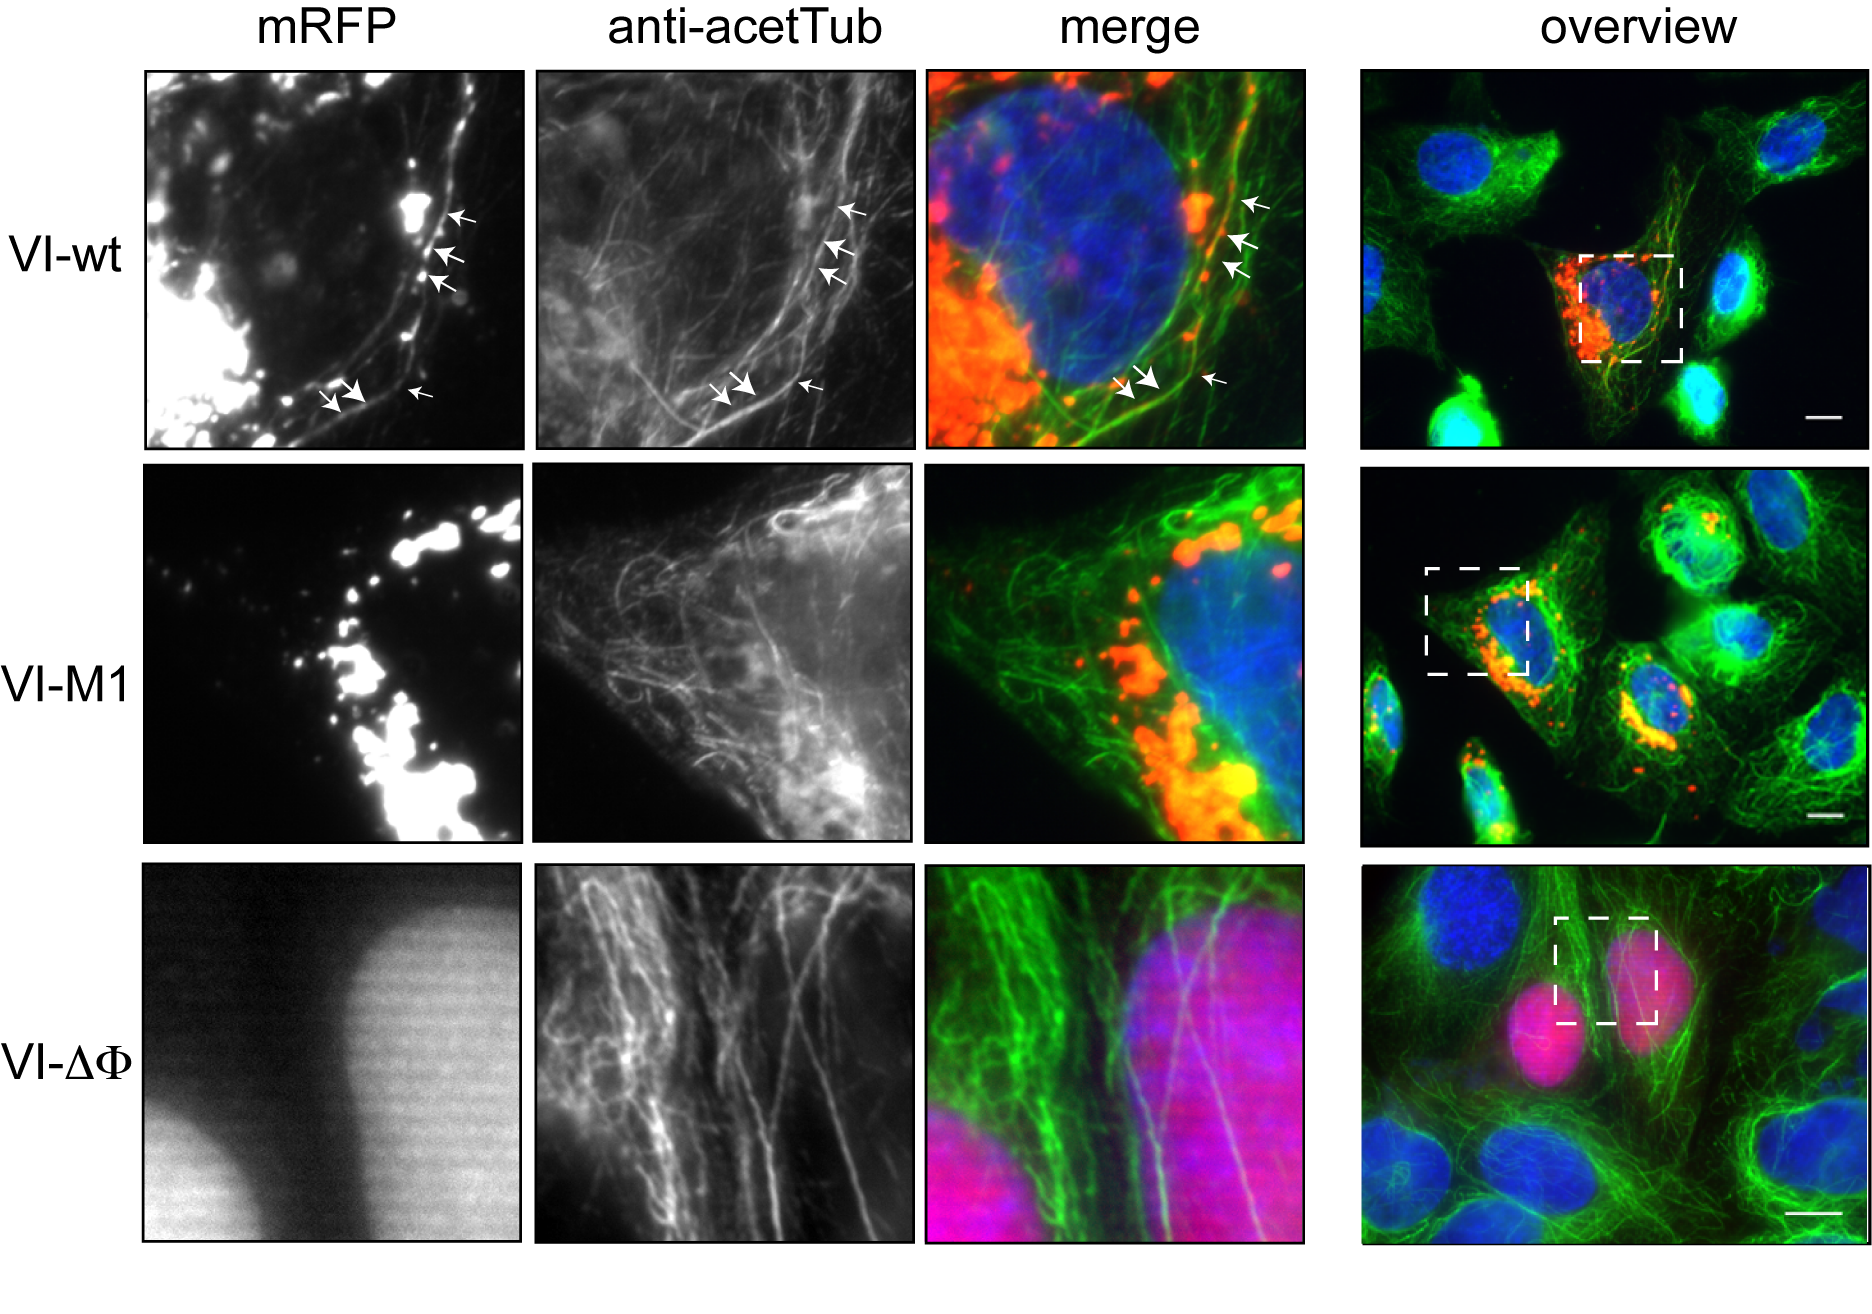 Subcellular localization of protein VI.